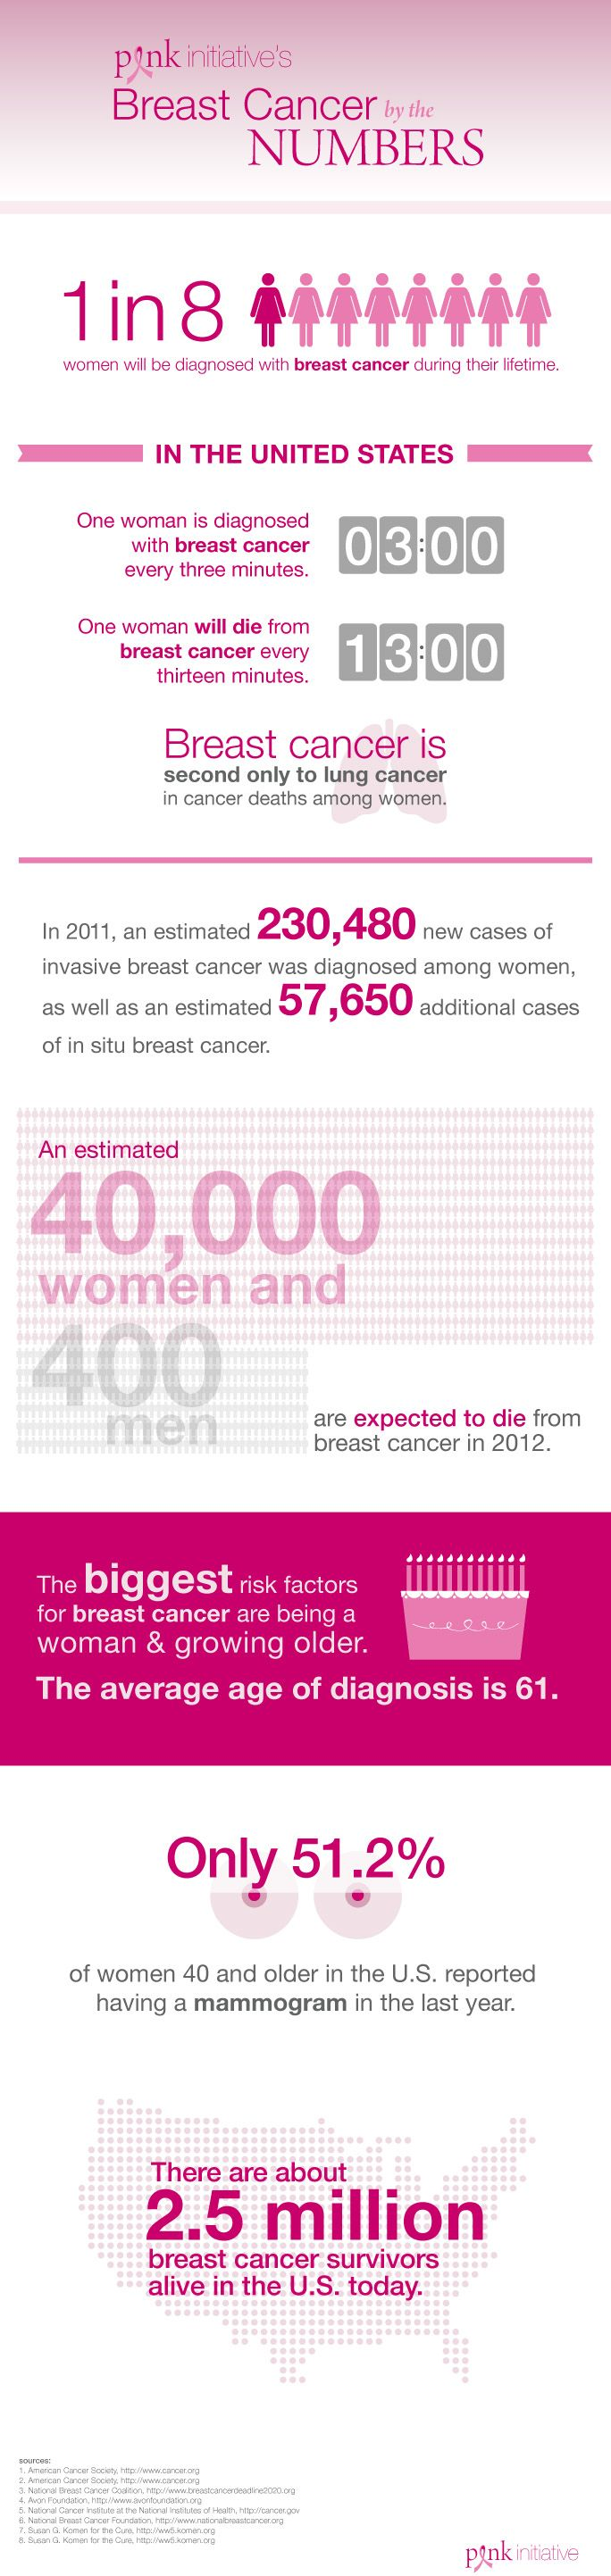 breast cancer facts 9 best images about breast cancer on 30479